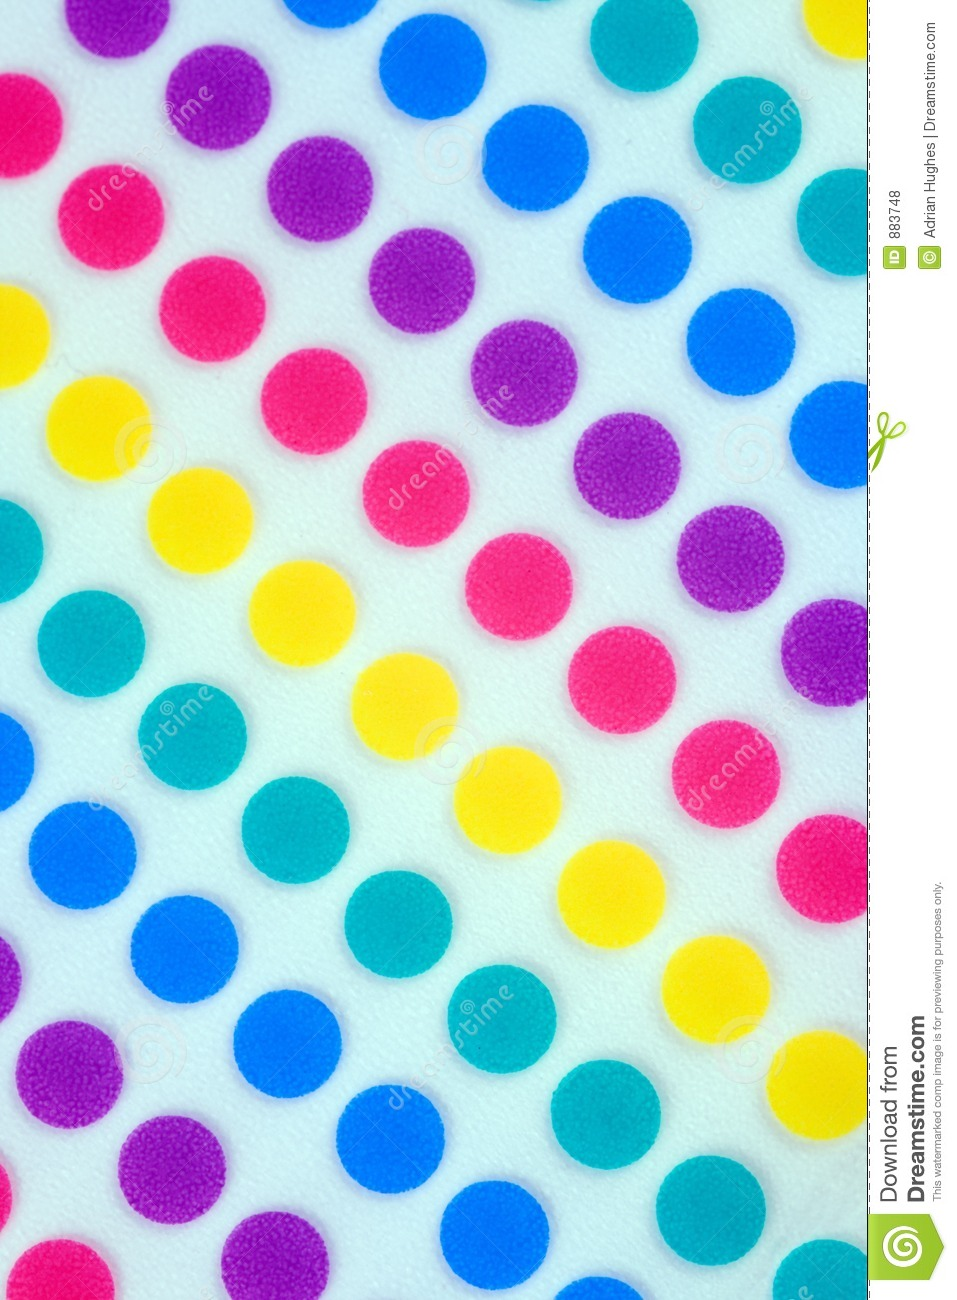 Spotty Background Royalty Free Stock Photos Image 883748